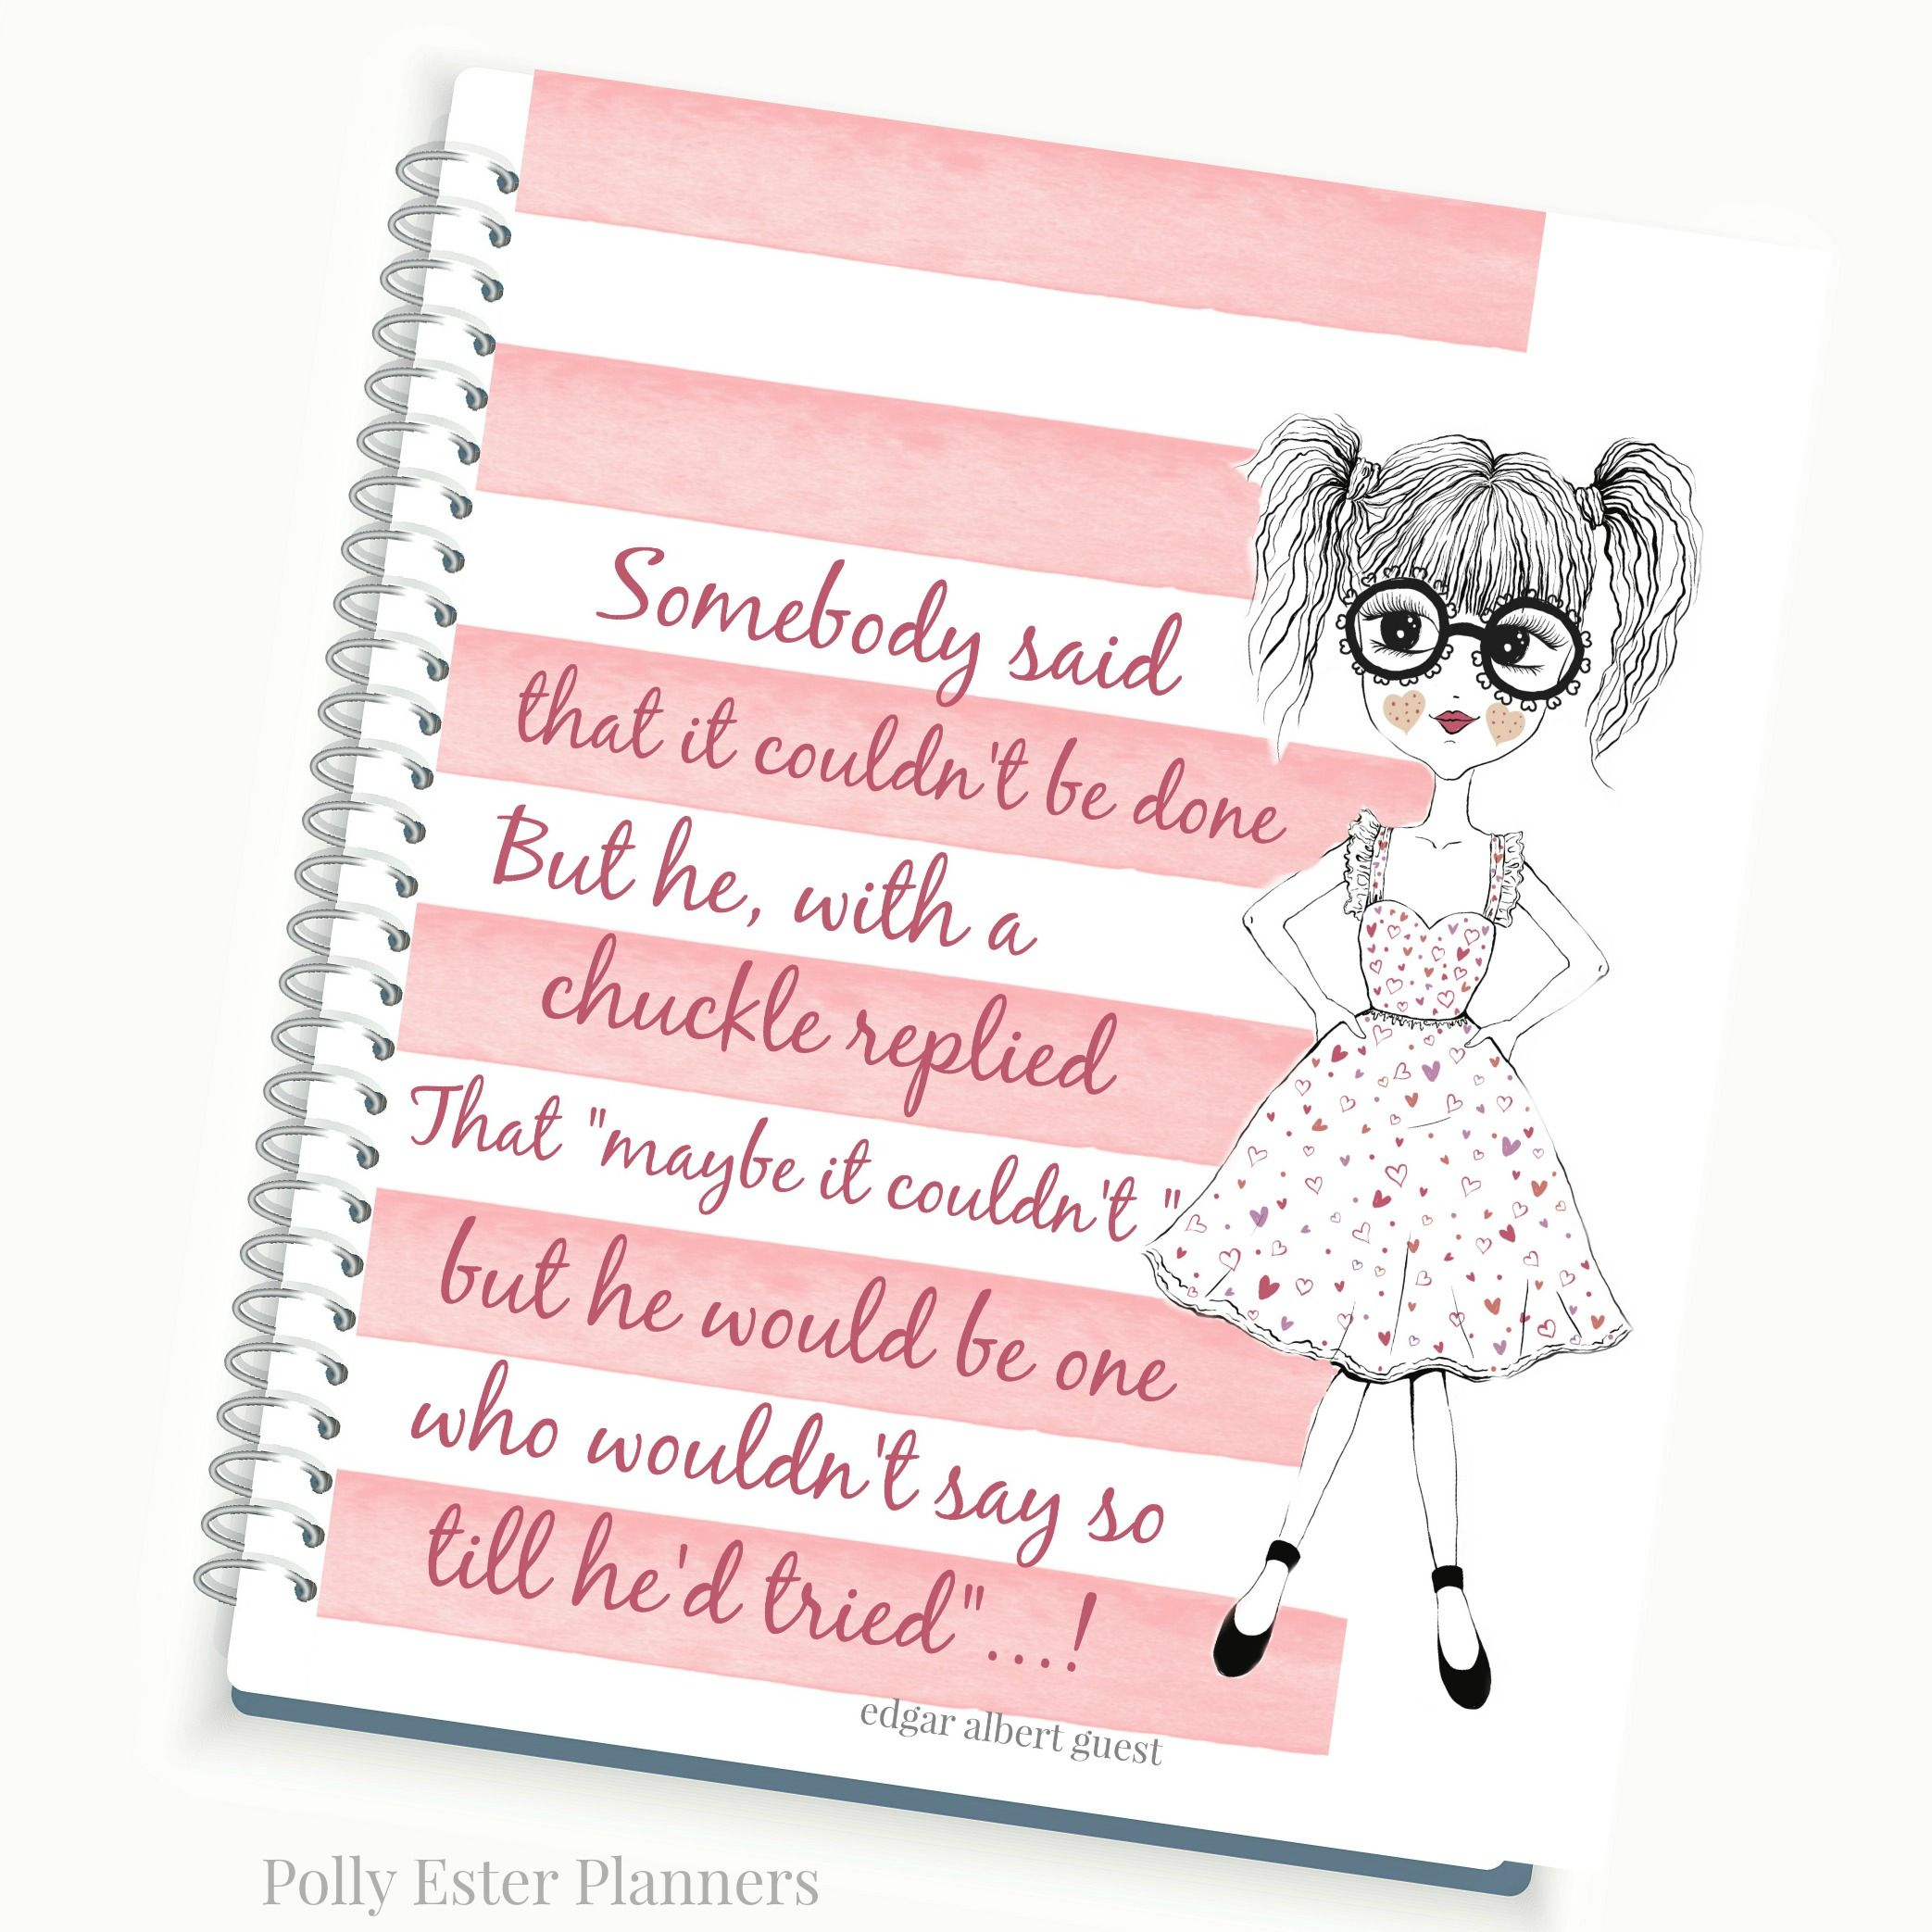 Planner And Organizers Planner With Inspirational